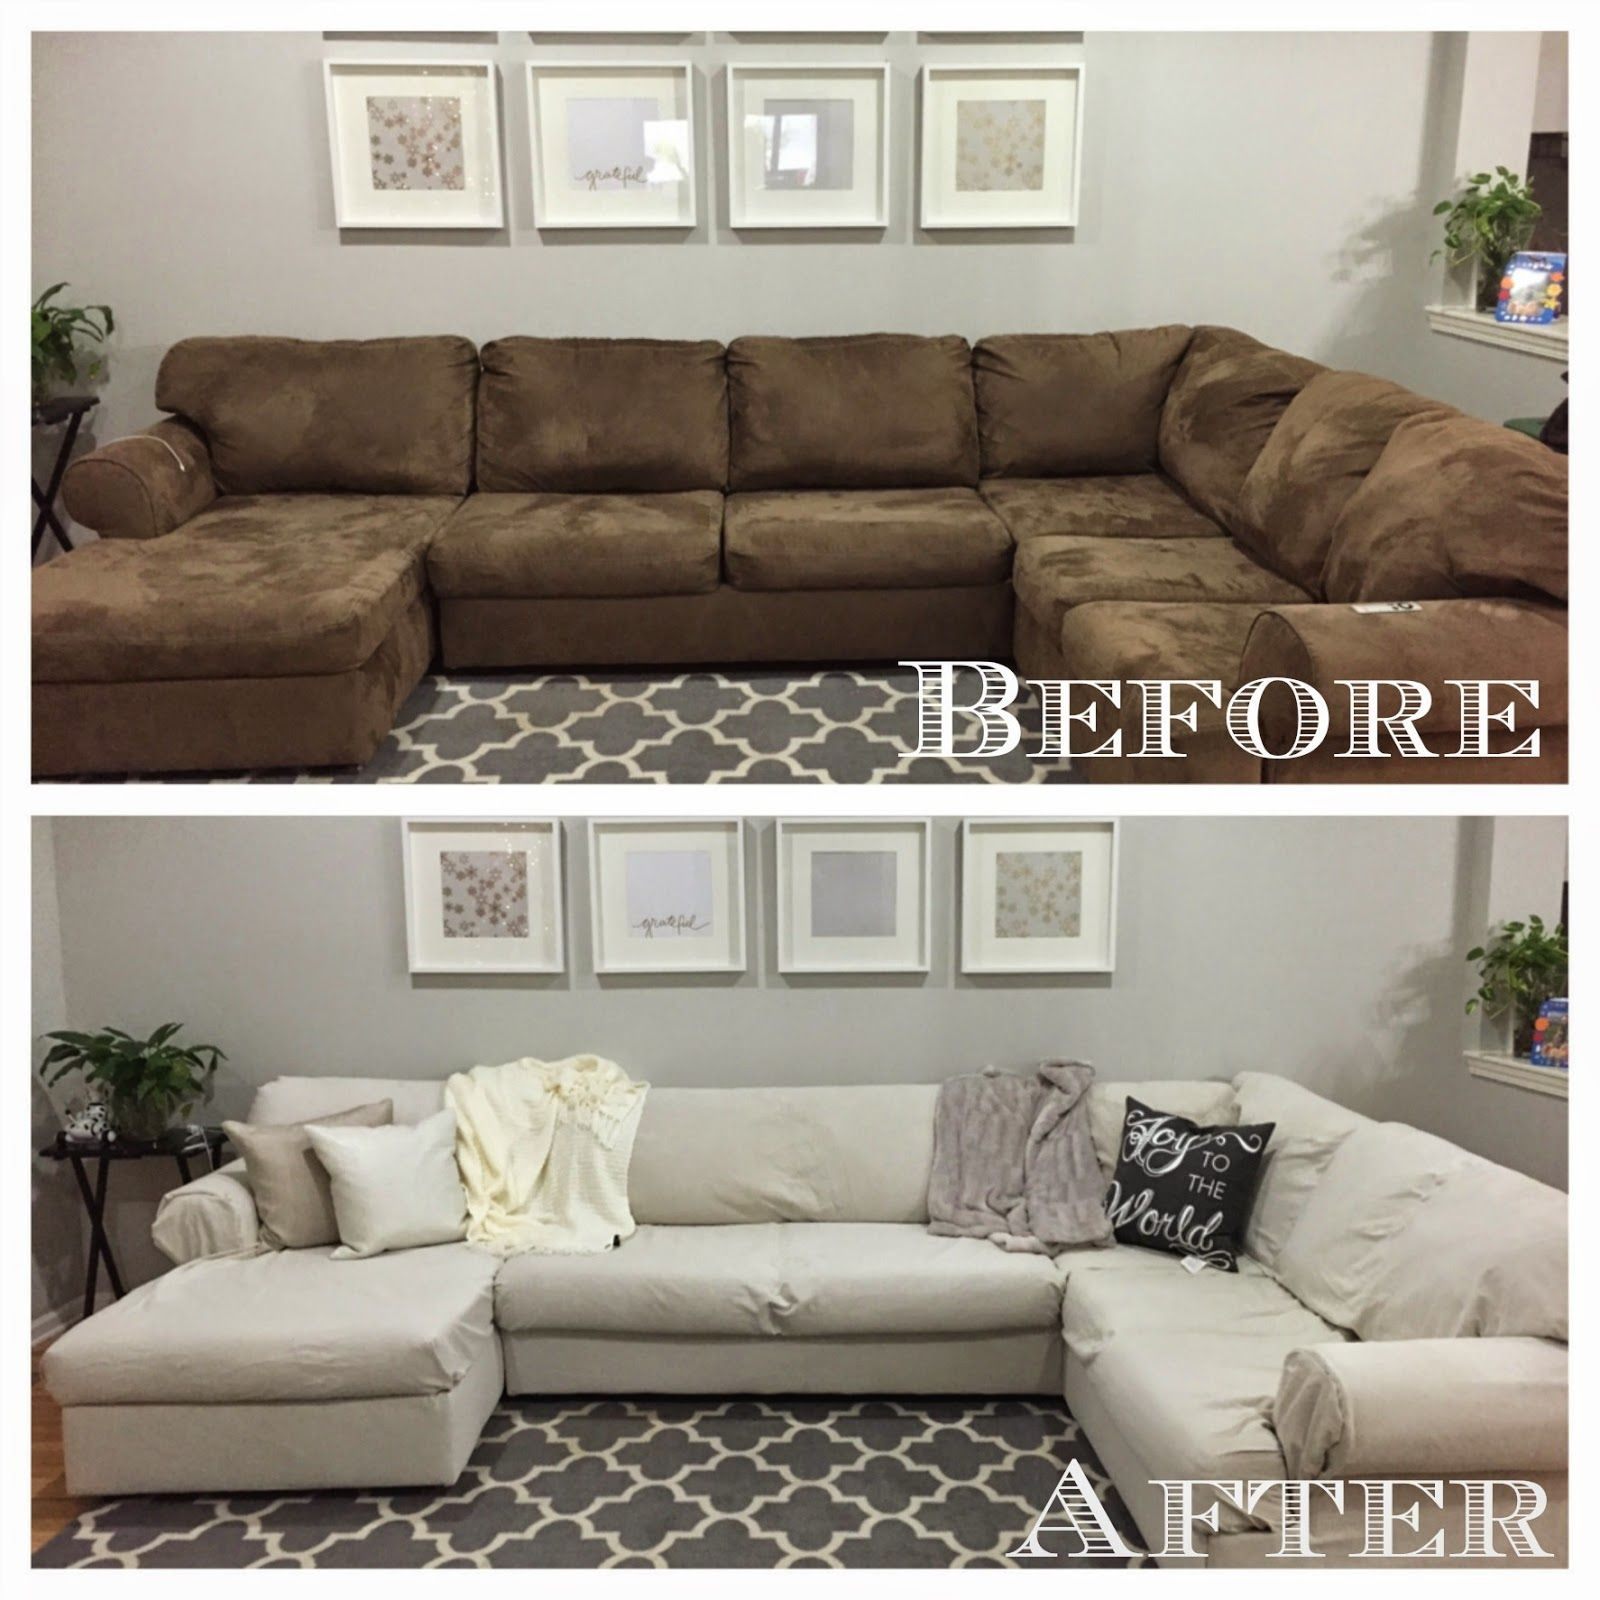 Best 25 Sectional couch cover ideas on Pinterest